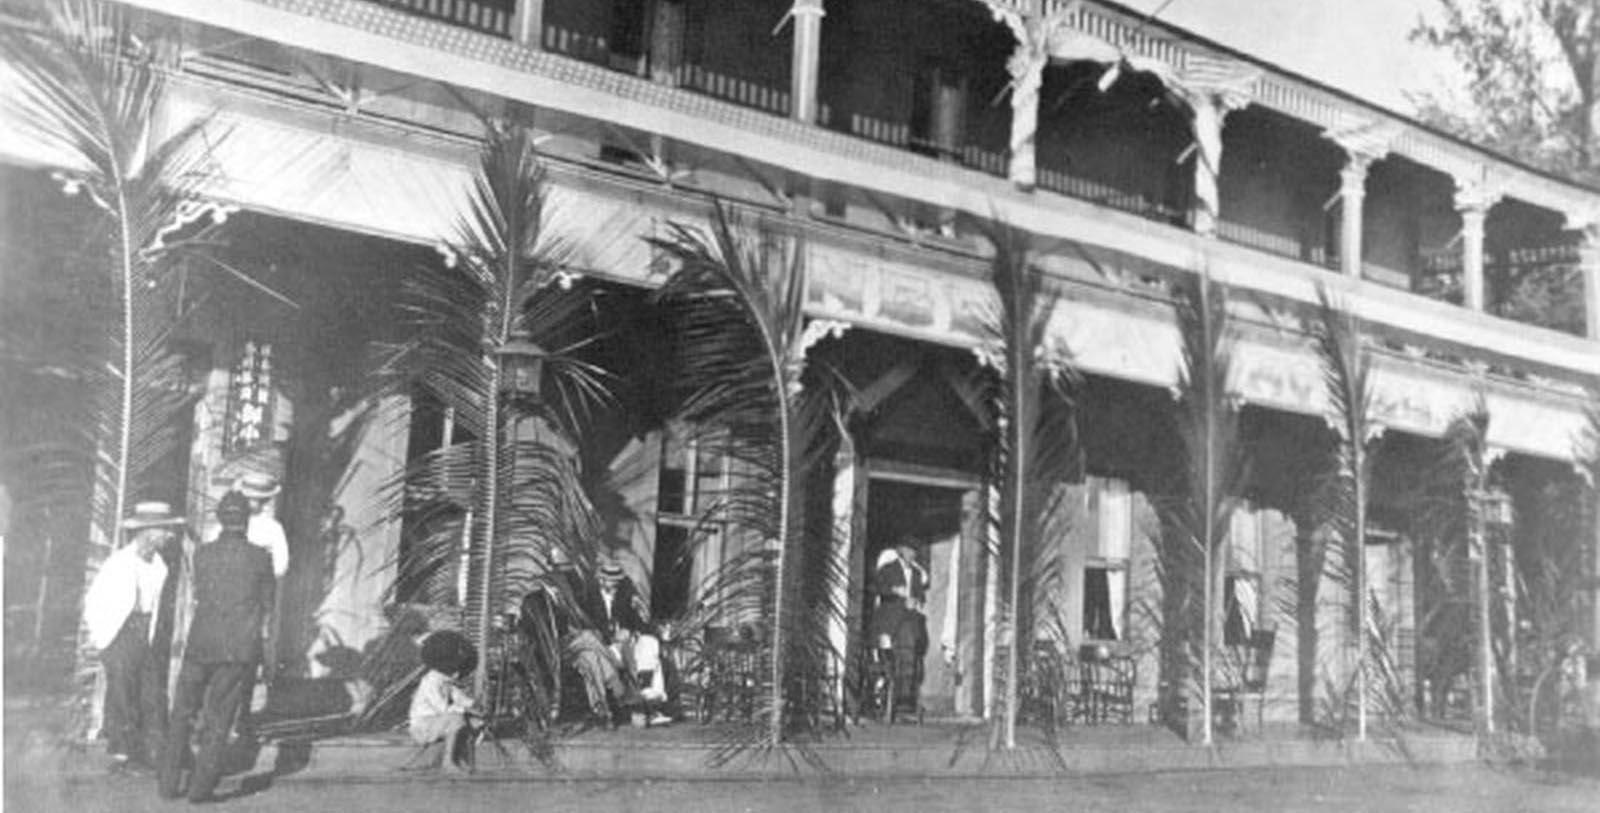 Historic Image of Exterior Pioneer Inn, 1901, Member of Historic Hotels of America, in Lahaina, Hawaii, Discover